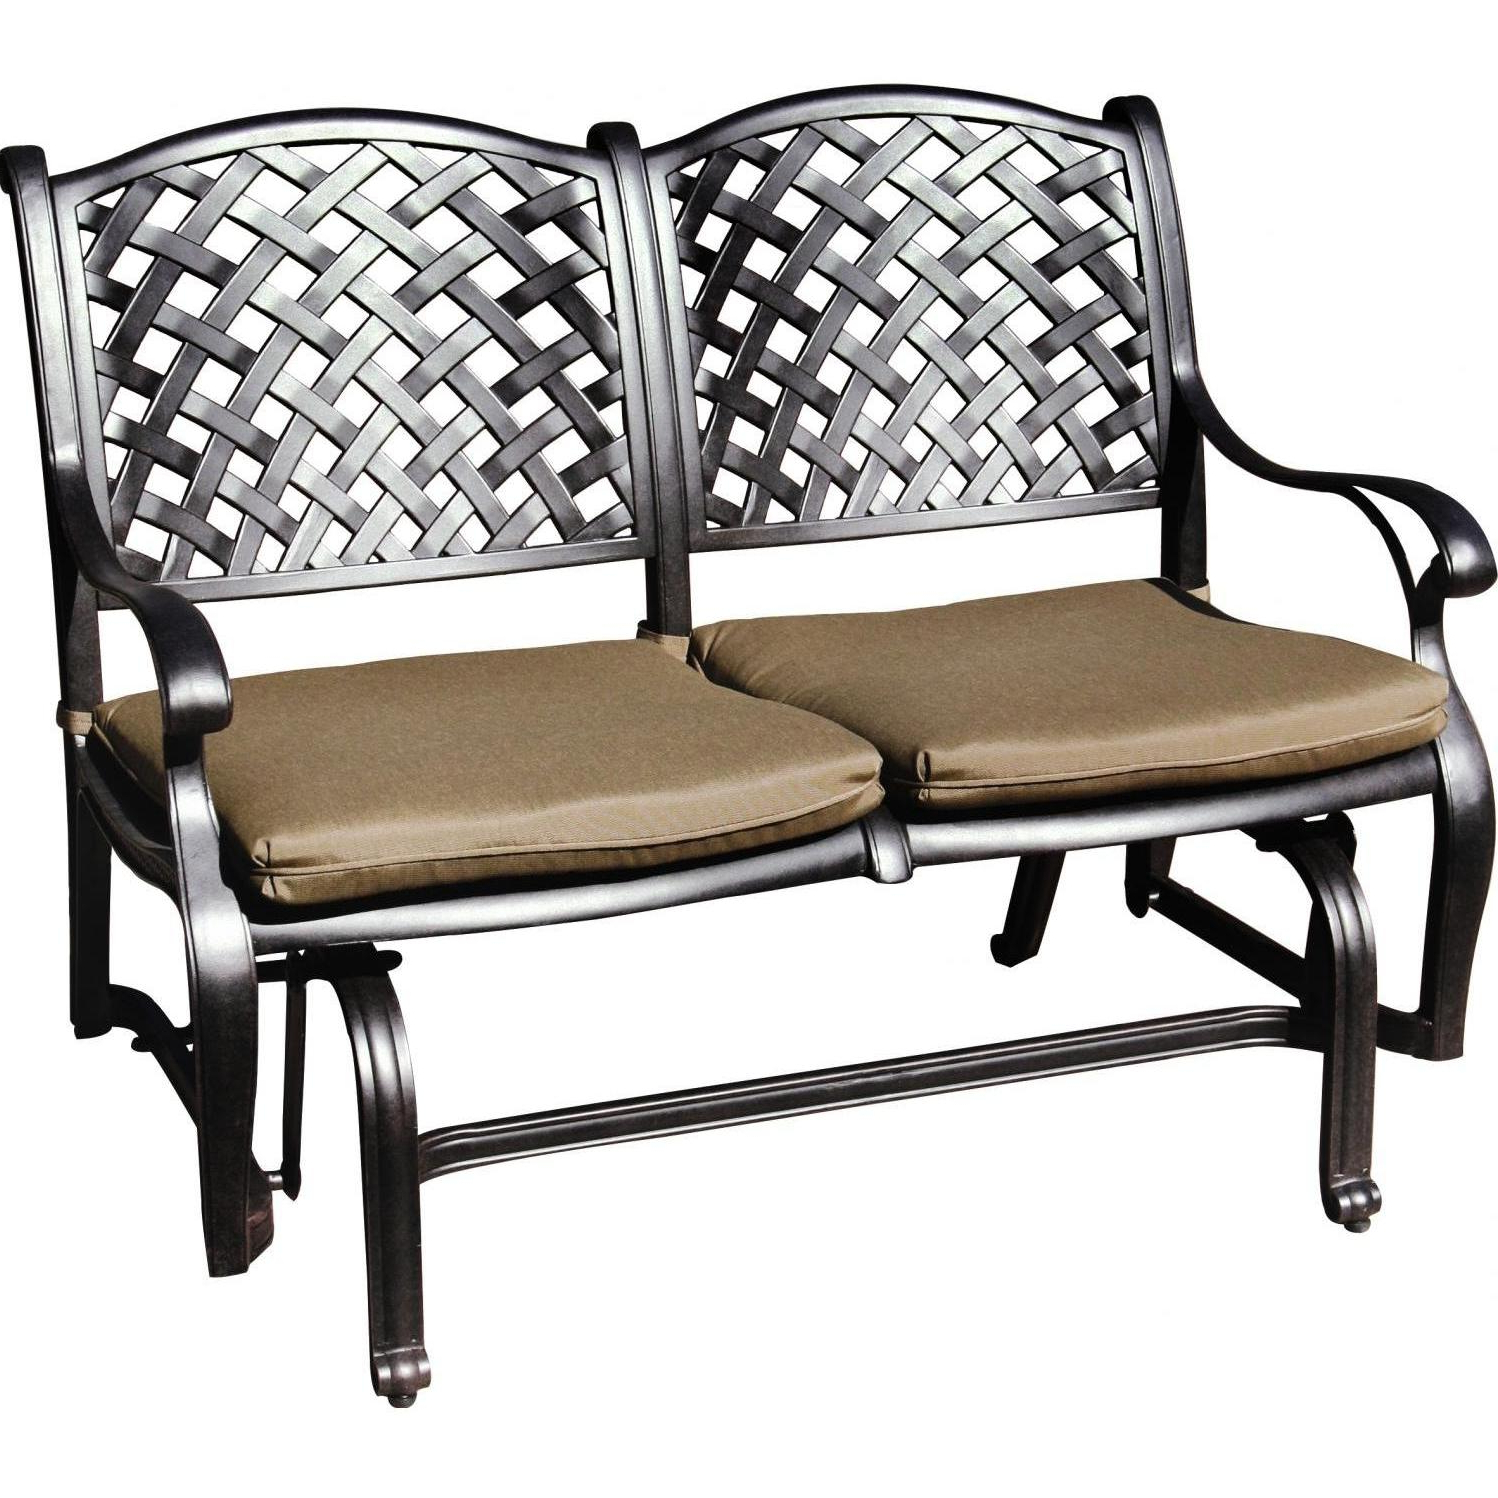 Darlee Nassau Cast Aluminum Patio Bench Glider Pertaining To Newest 1 Person Antique Black Steel Outdoor Gliders (View 5 of 25)